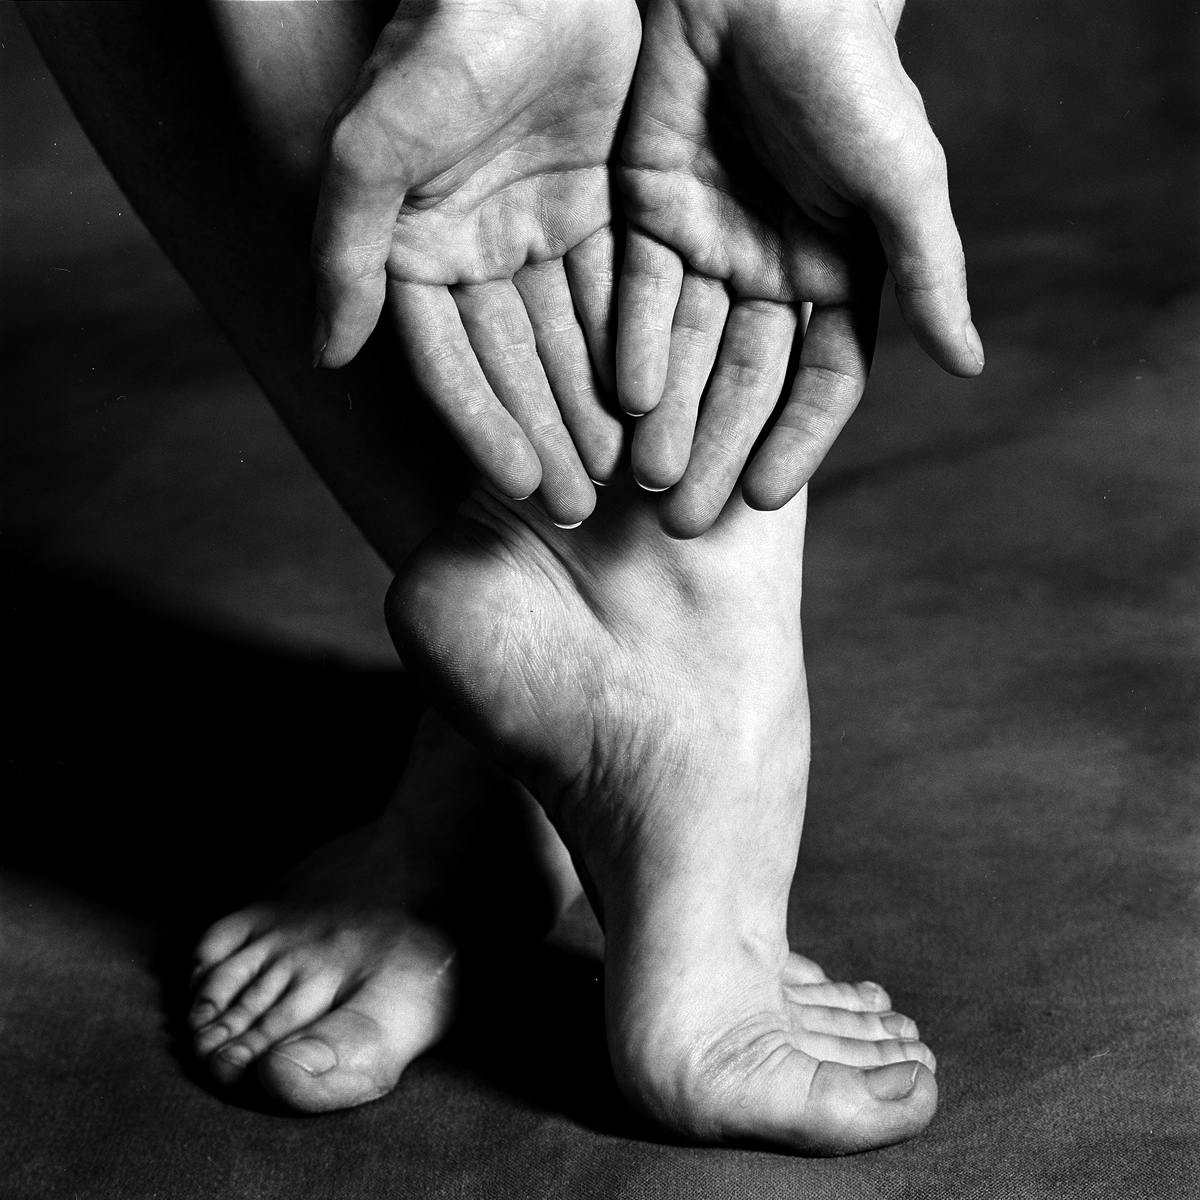 Dancer's Hands (2002)